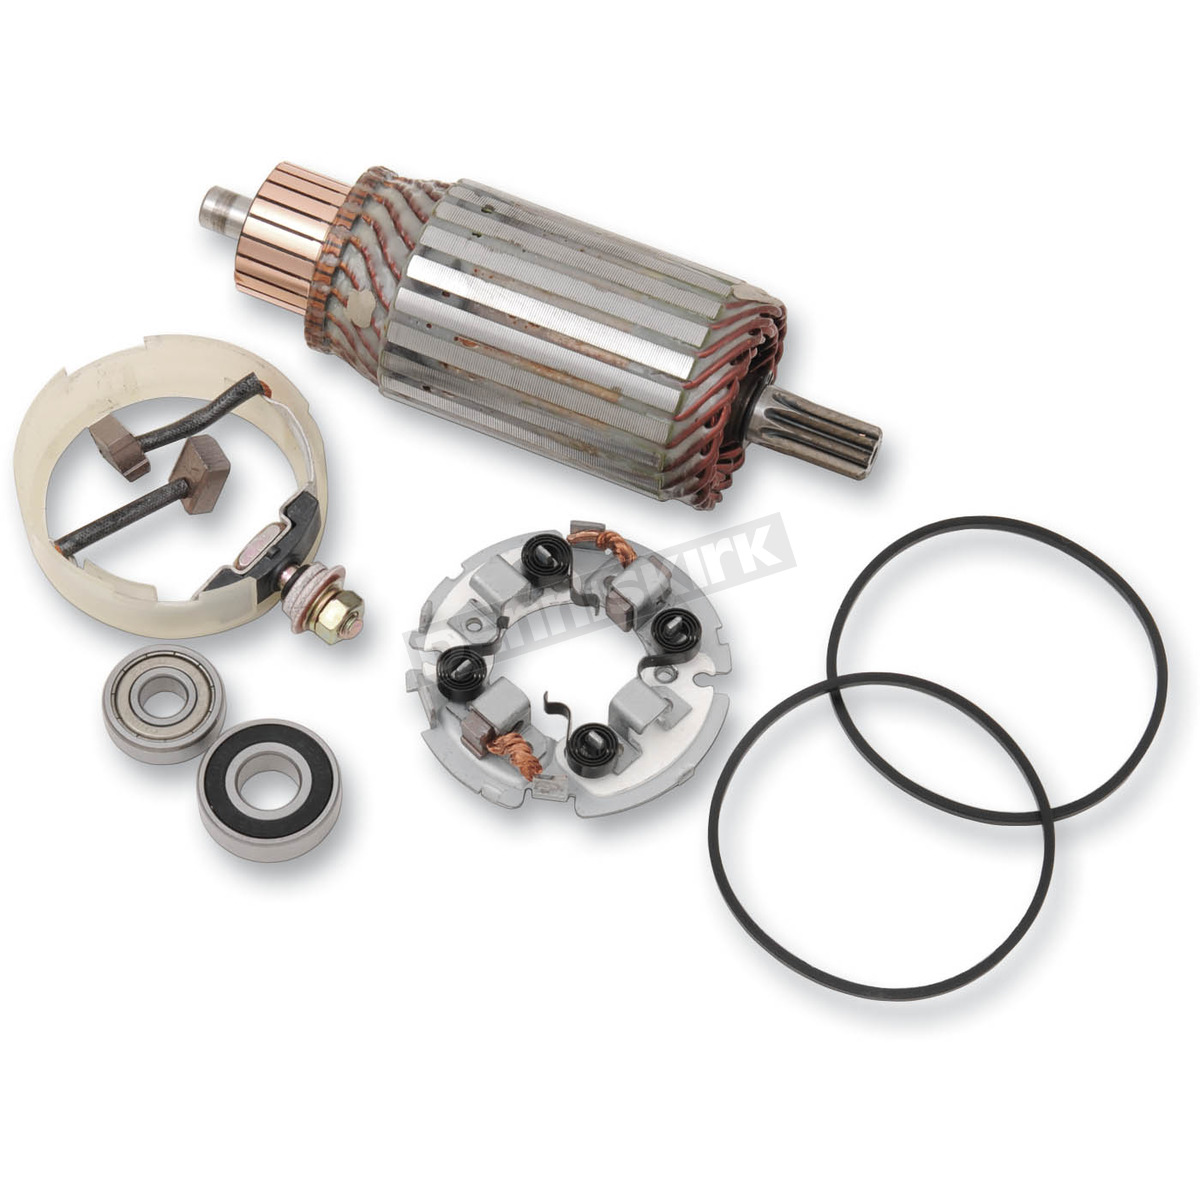 ricks motorsport electrics starter motor rebuild kit 70